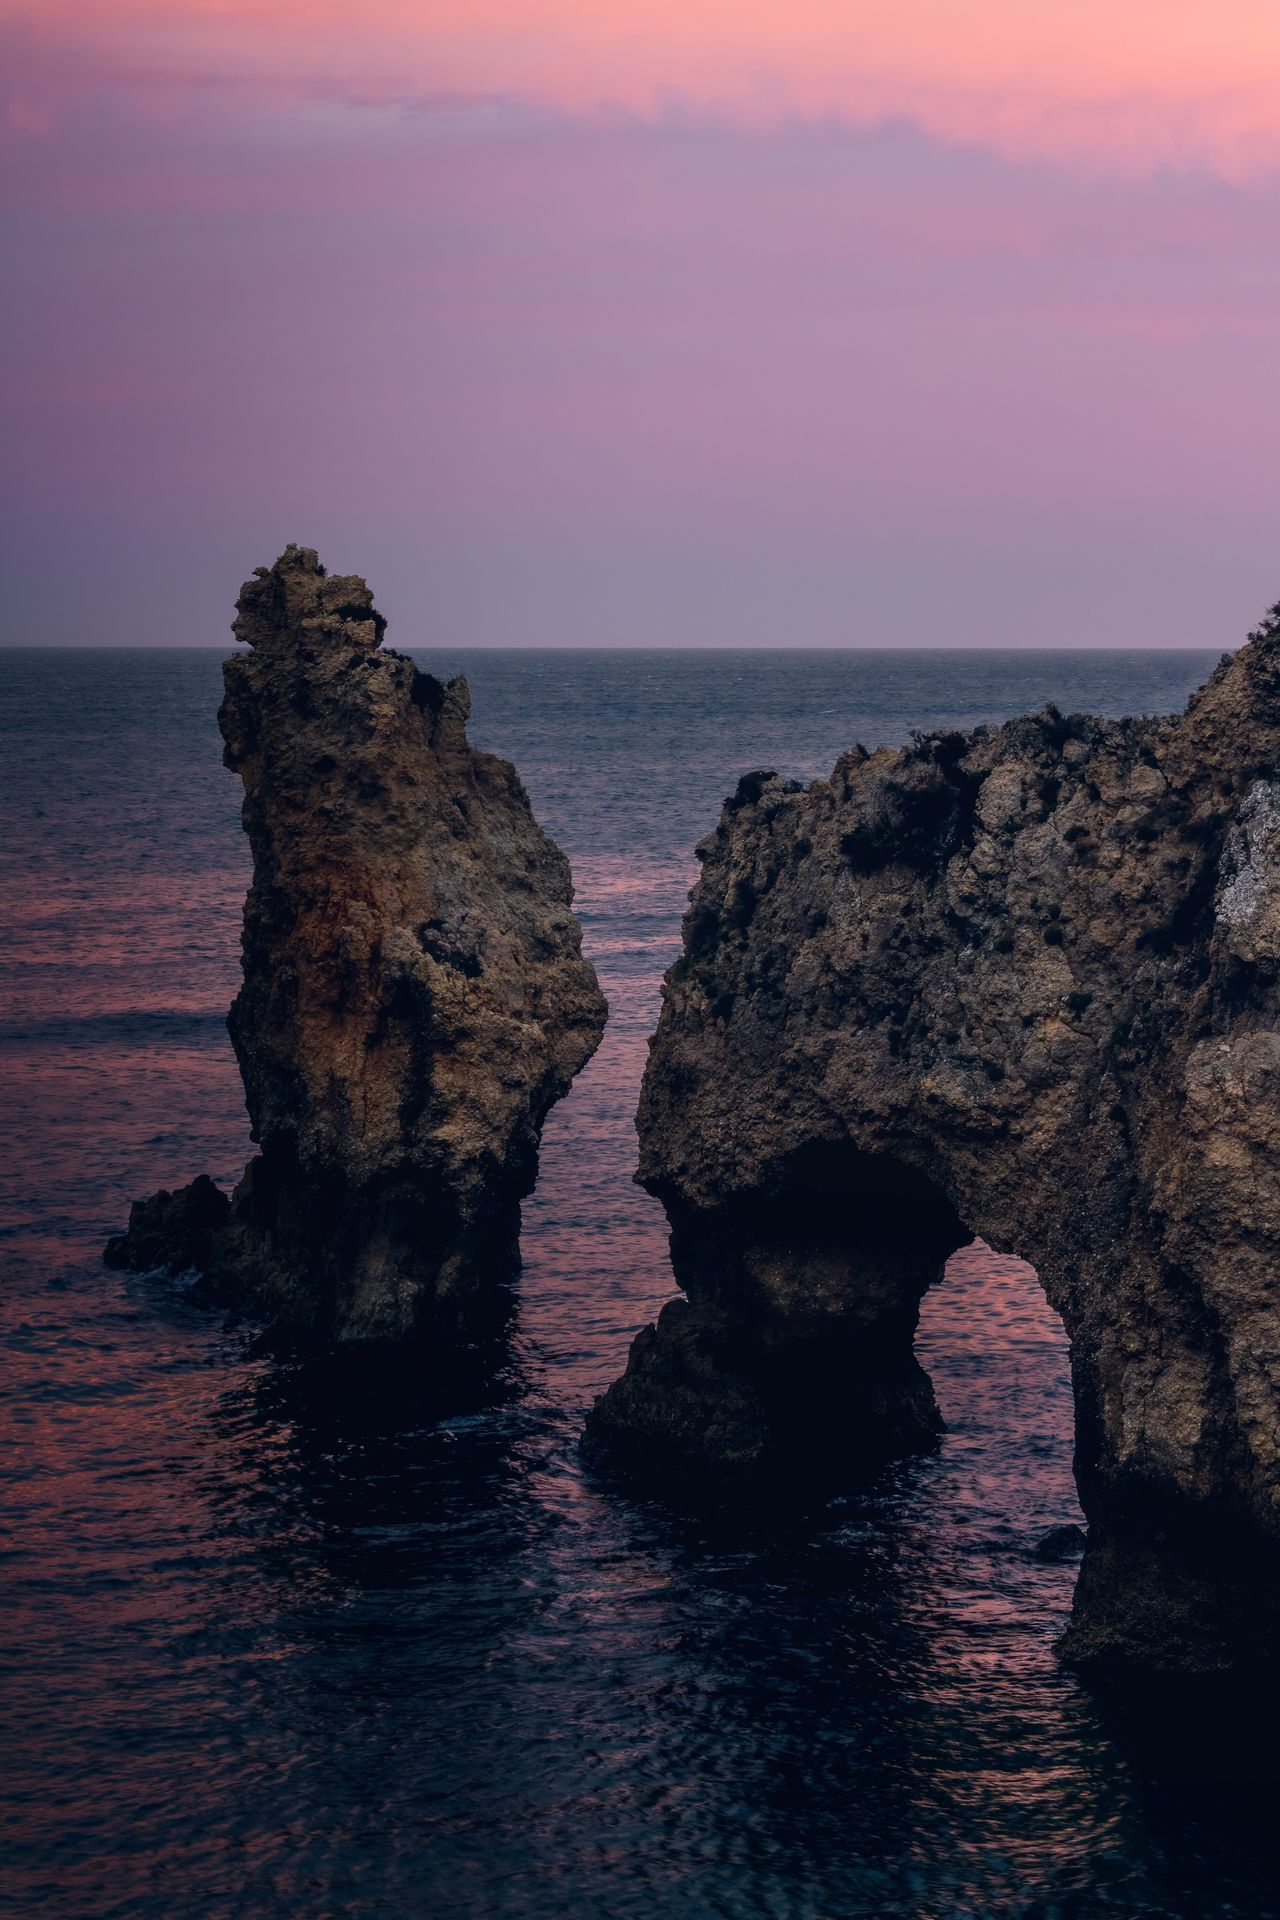 Ponta Da Piedade Portugal Algarve Lagos Sea Sunset Nature The Great Outdoors - 2017 EyeEm Awards Beauty In Nature Horizon Over Water Water Scenics Tranquility Sky No People Outdoors Landscape Tranquil Scene Wave Spring Summer Day Cliff Beach Rock - Object